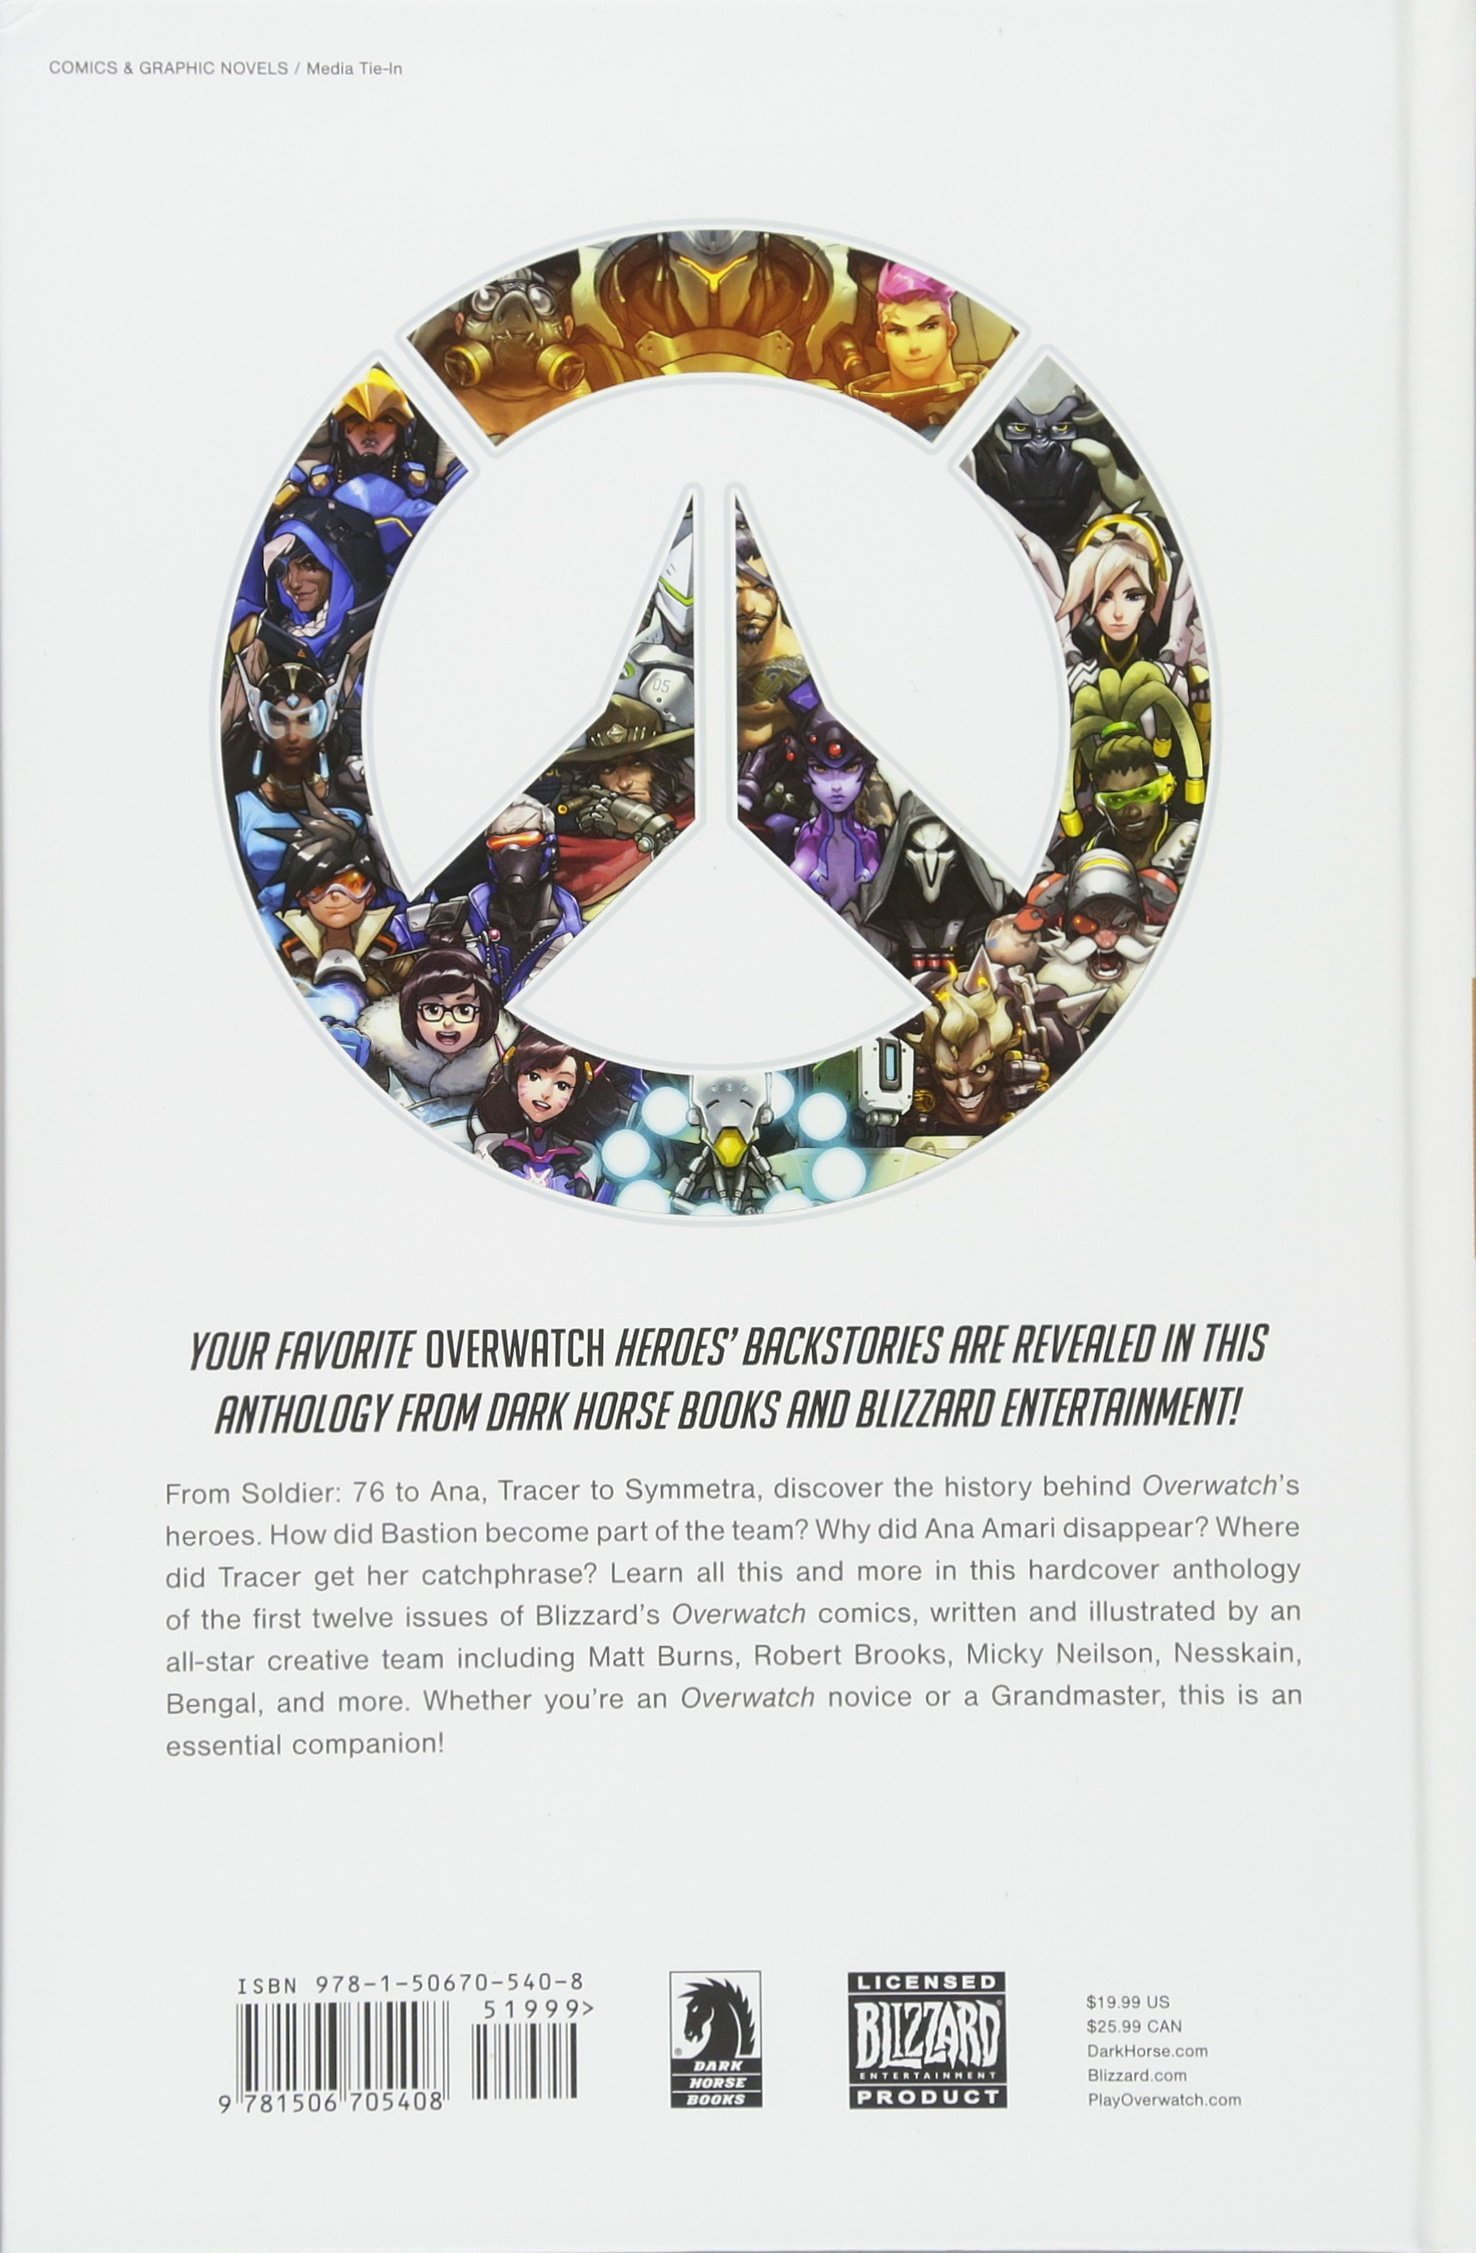 Amazon.com: Overwatch: Anthology Volume 1 (9781506705408 ...